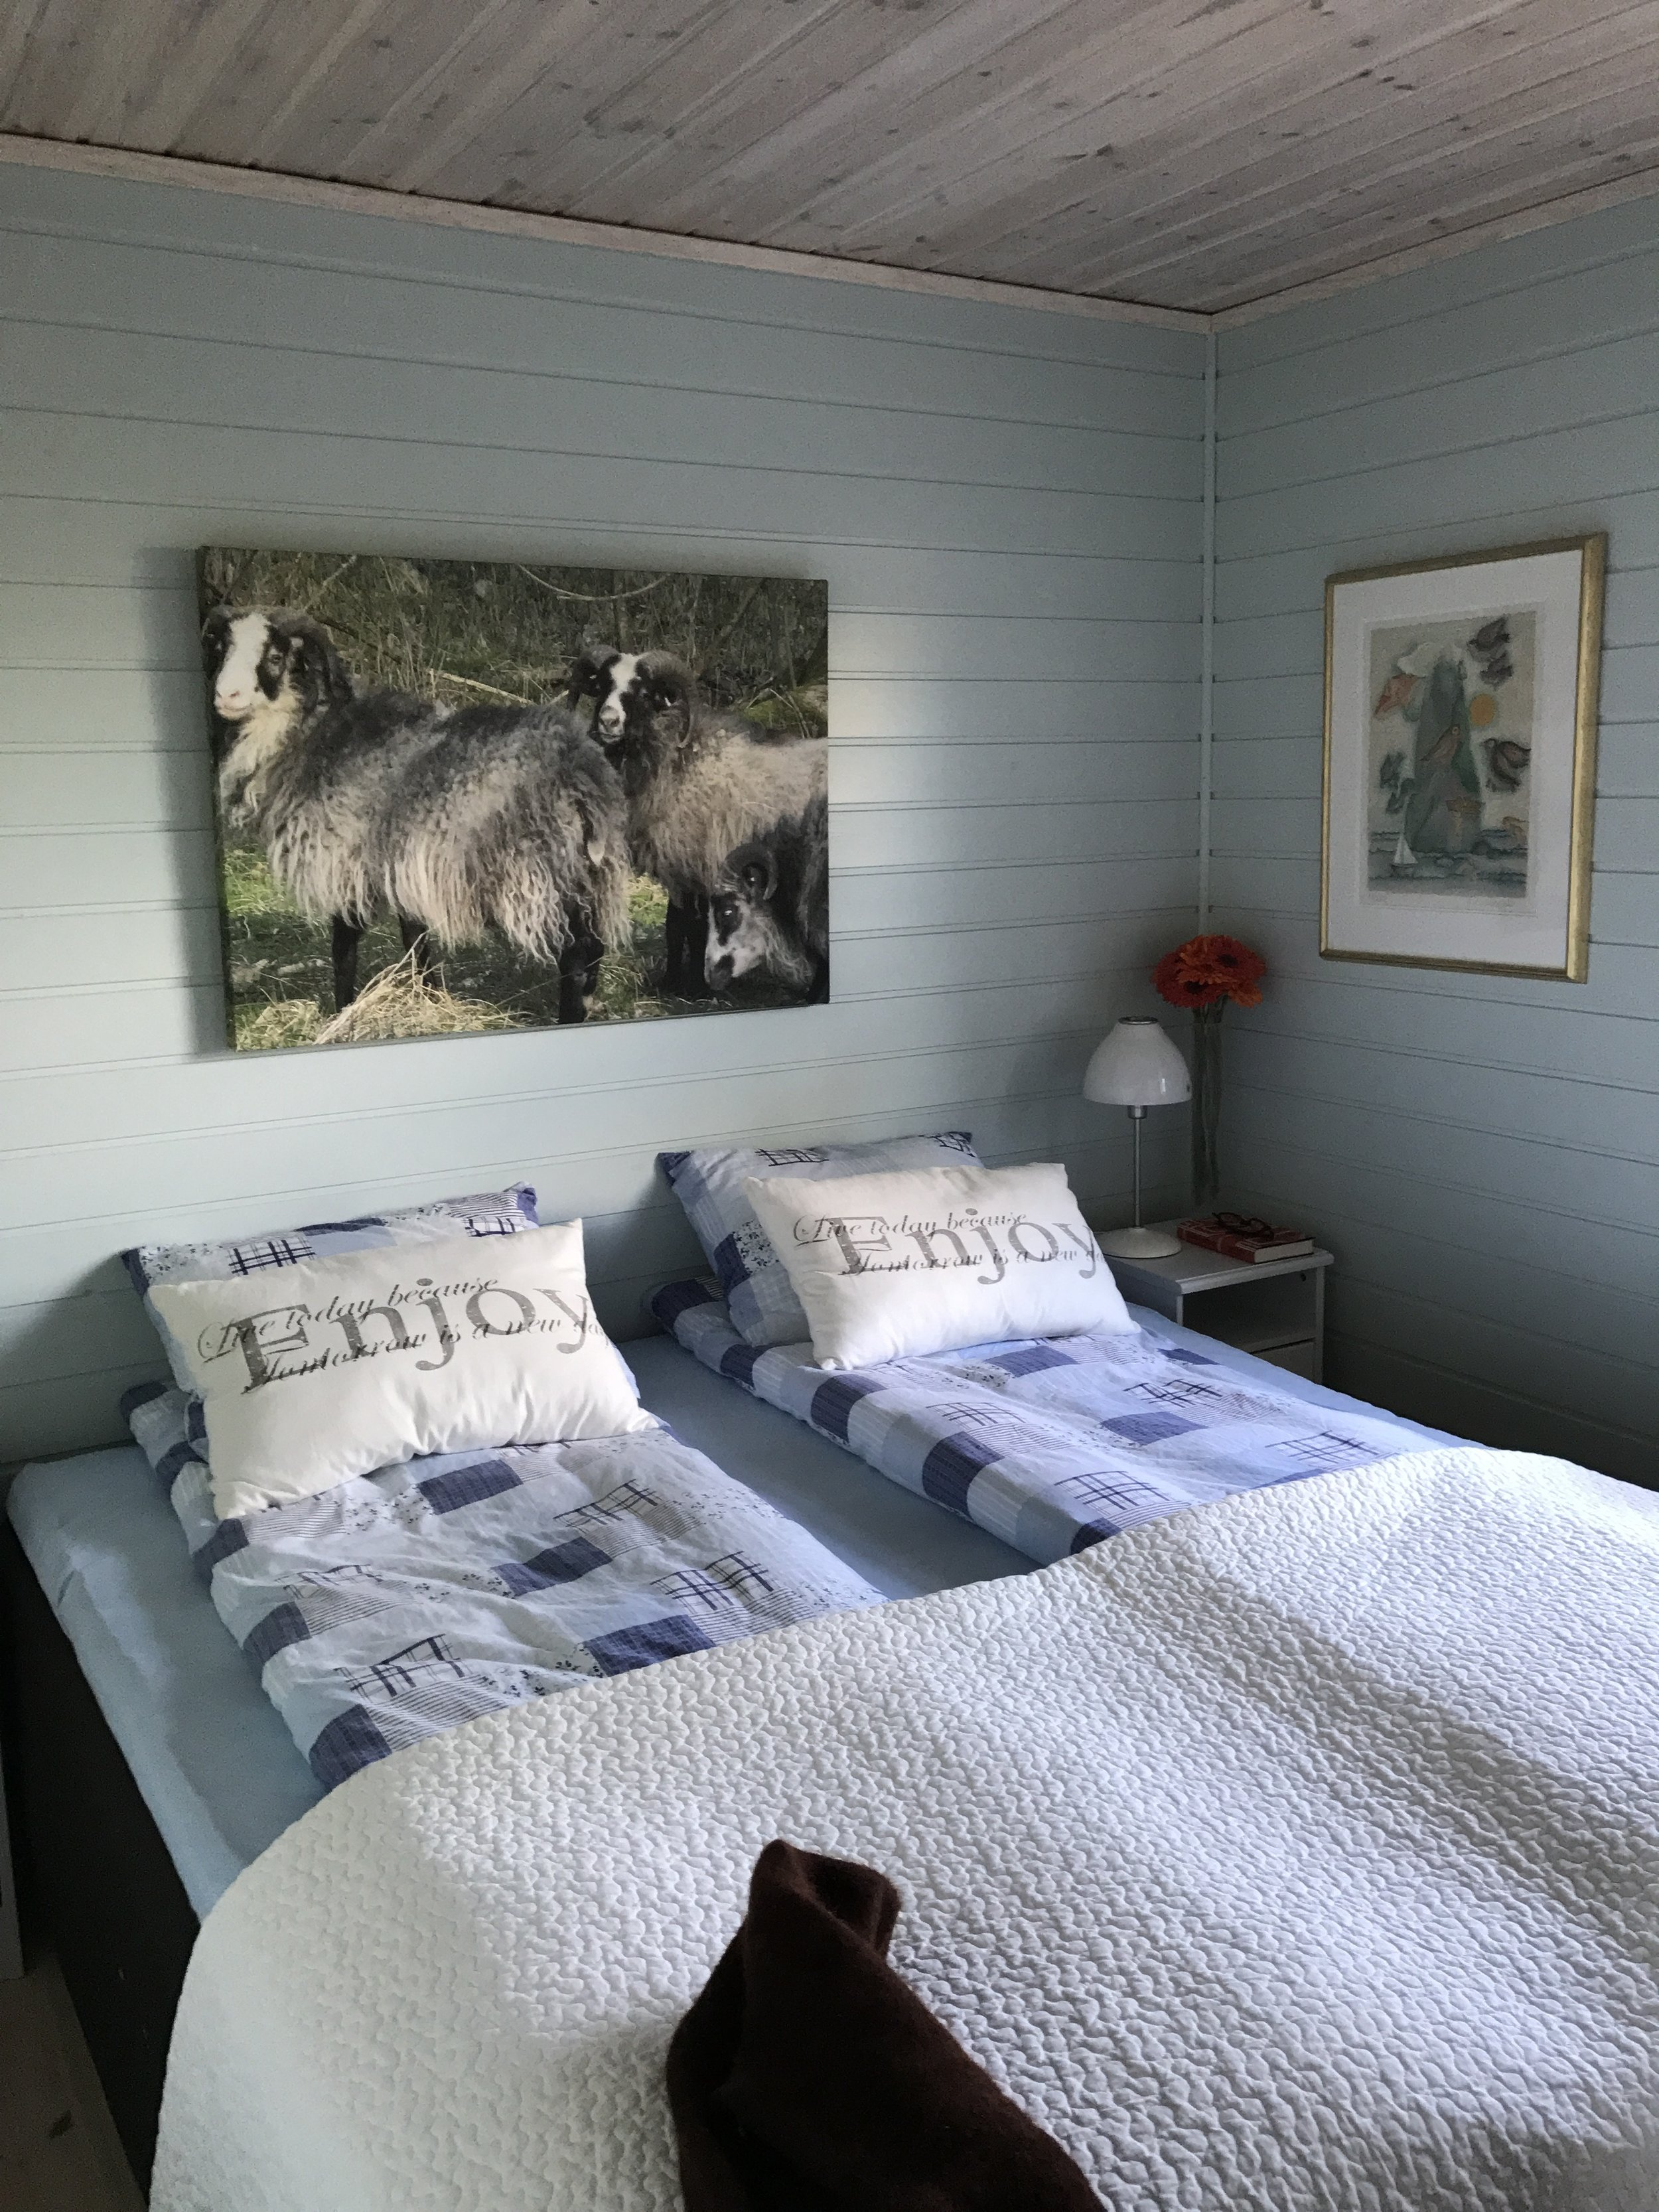 Our hosts' room...the artwork depicts the sheep you see roaming over the hillsides in Norway.